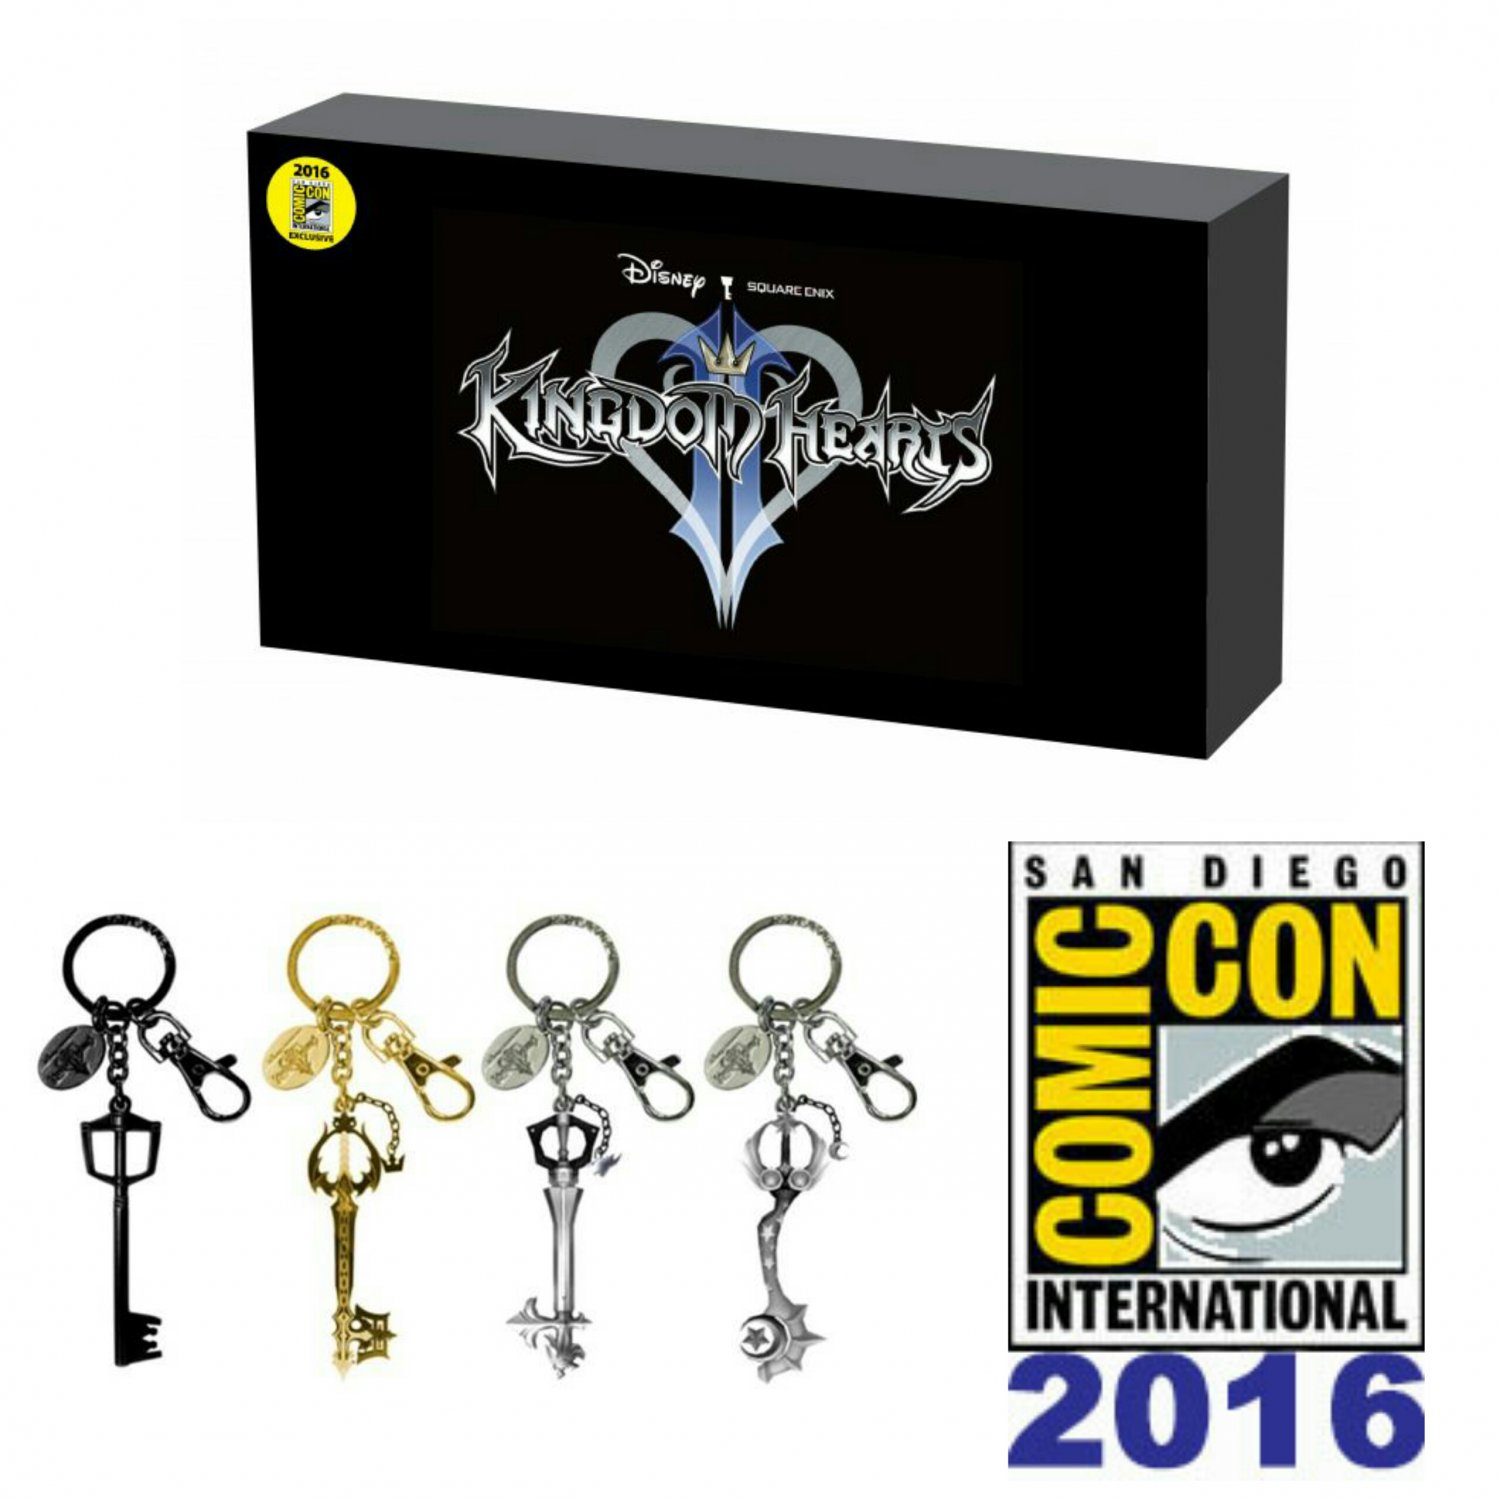 Disney Kingdom Hearts Pewter 4-Piece Keyblade Key Chain Set SDCC 2016 Summer Convention Exclusive